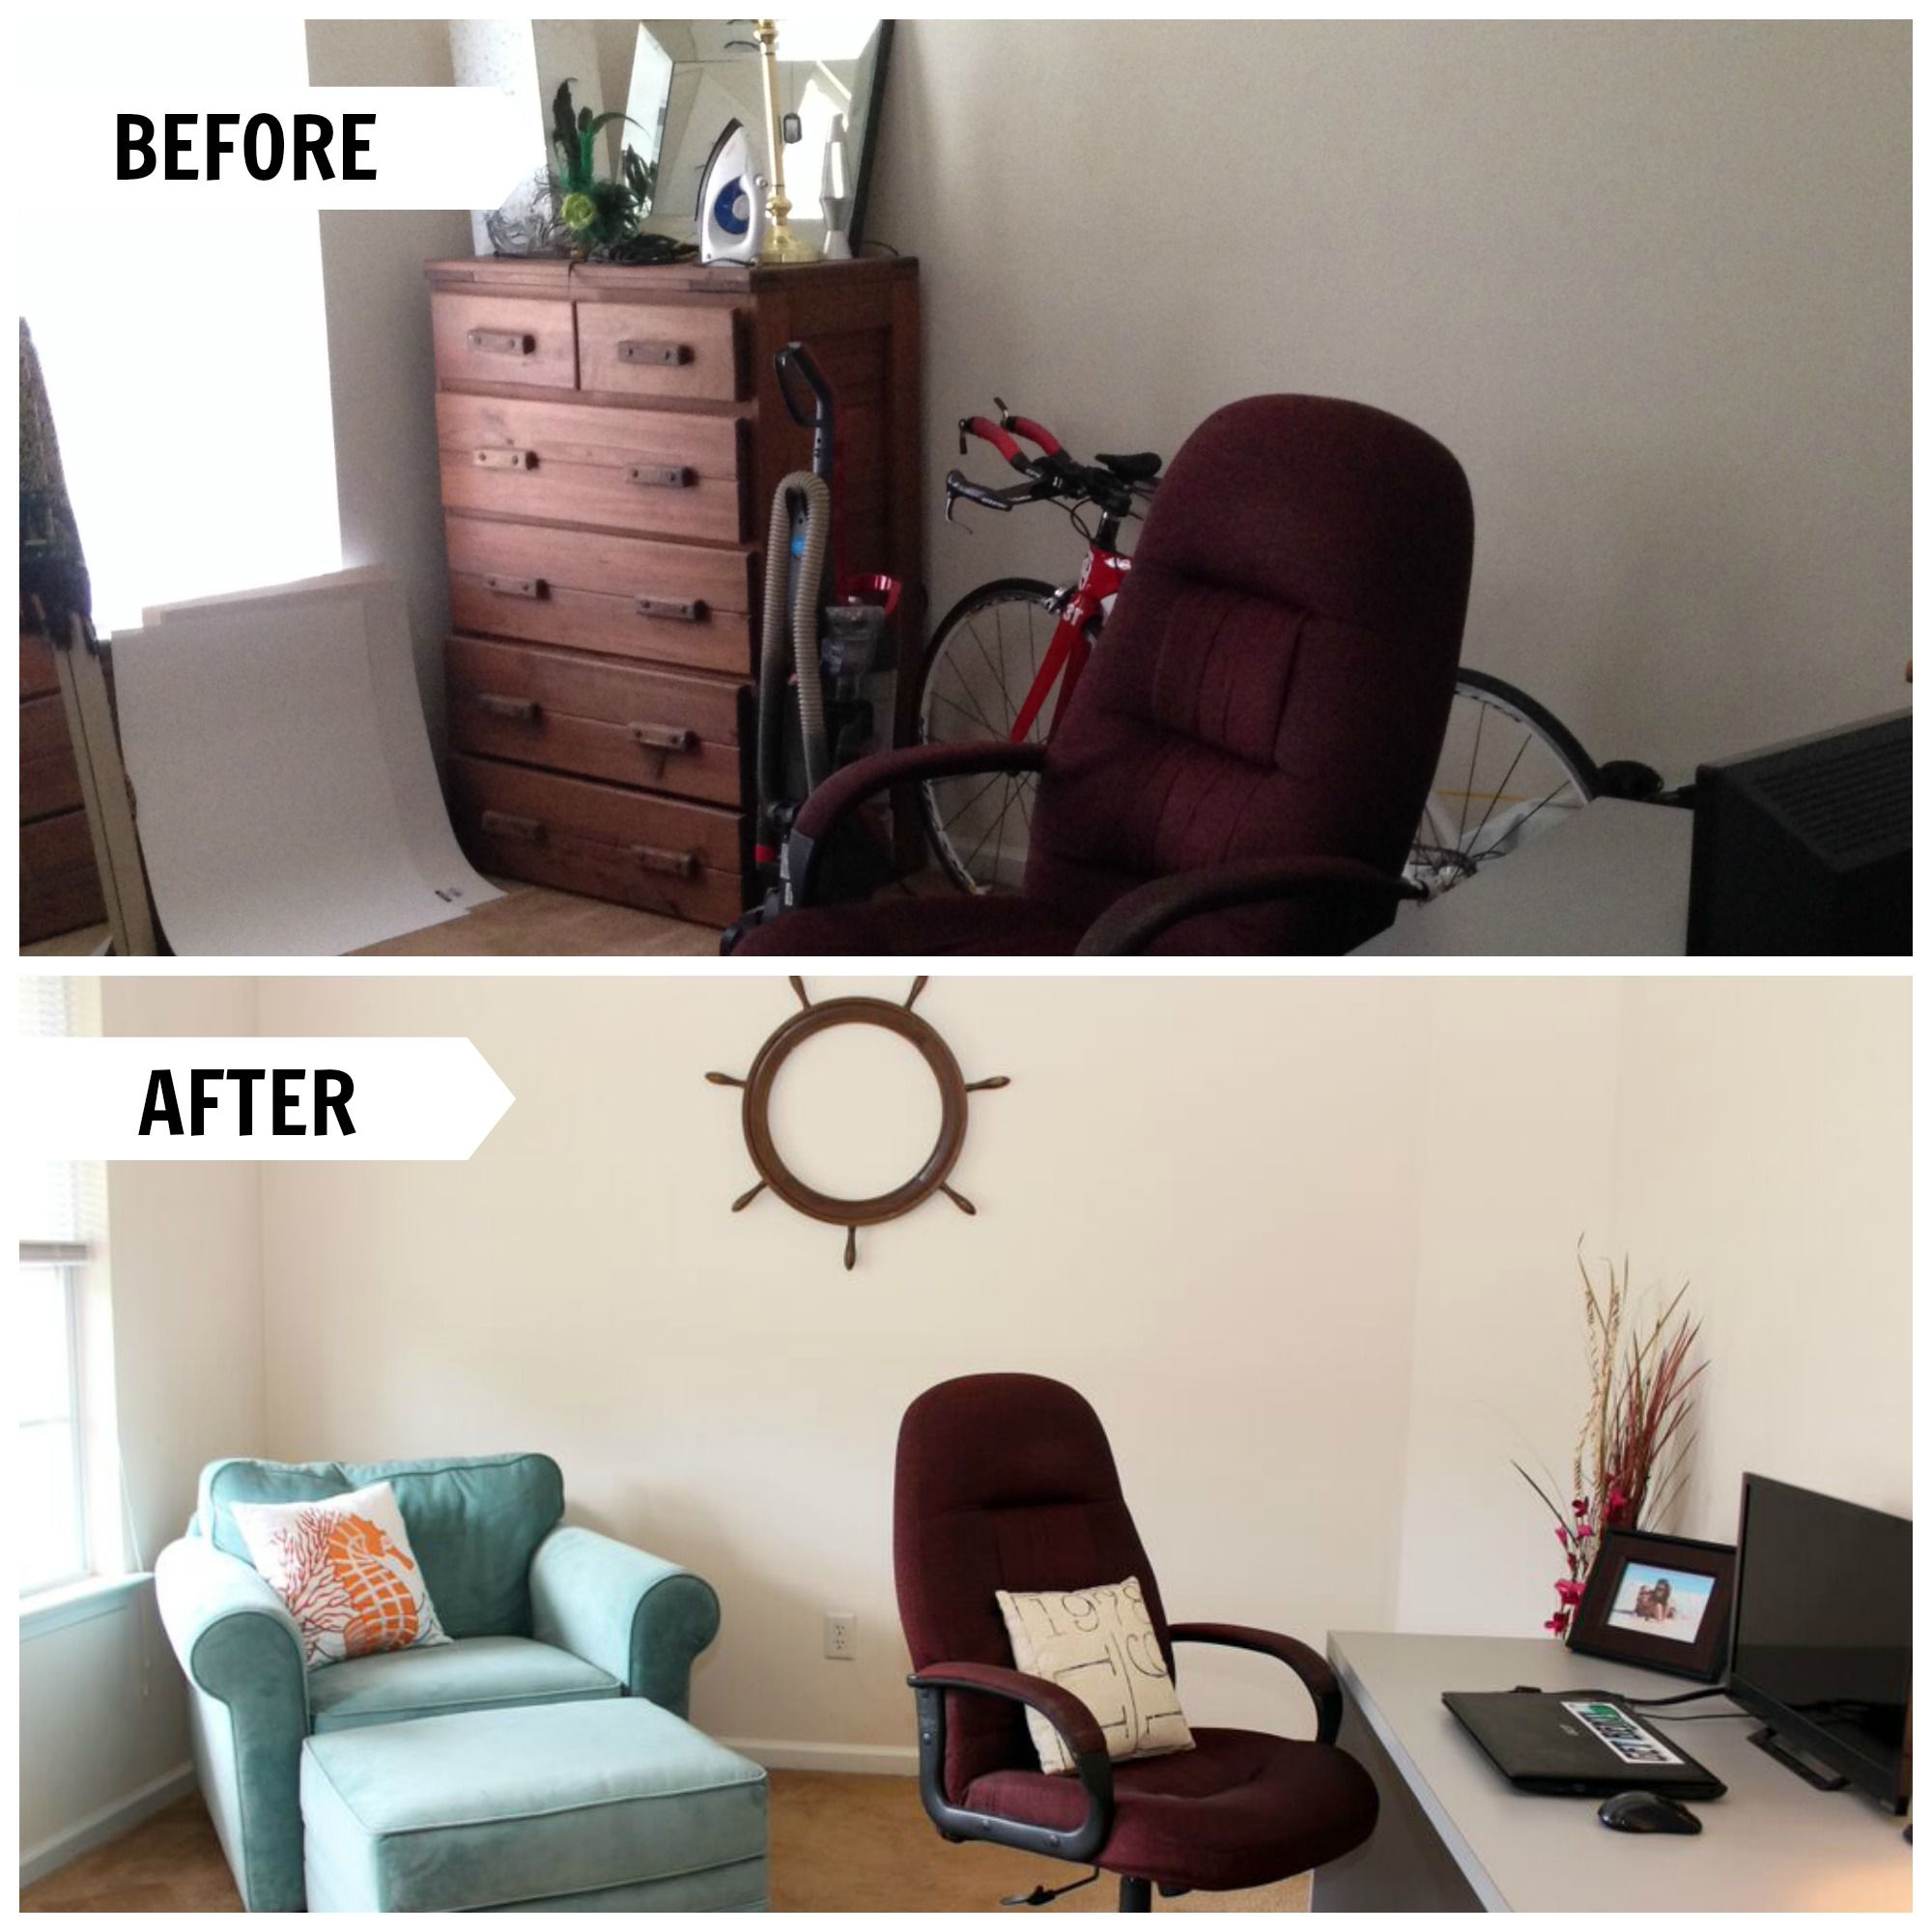 Interior Design Home Staging: Home Staging: Home Office How To Stage Your Home For Sale